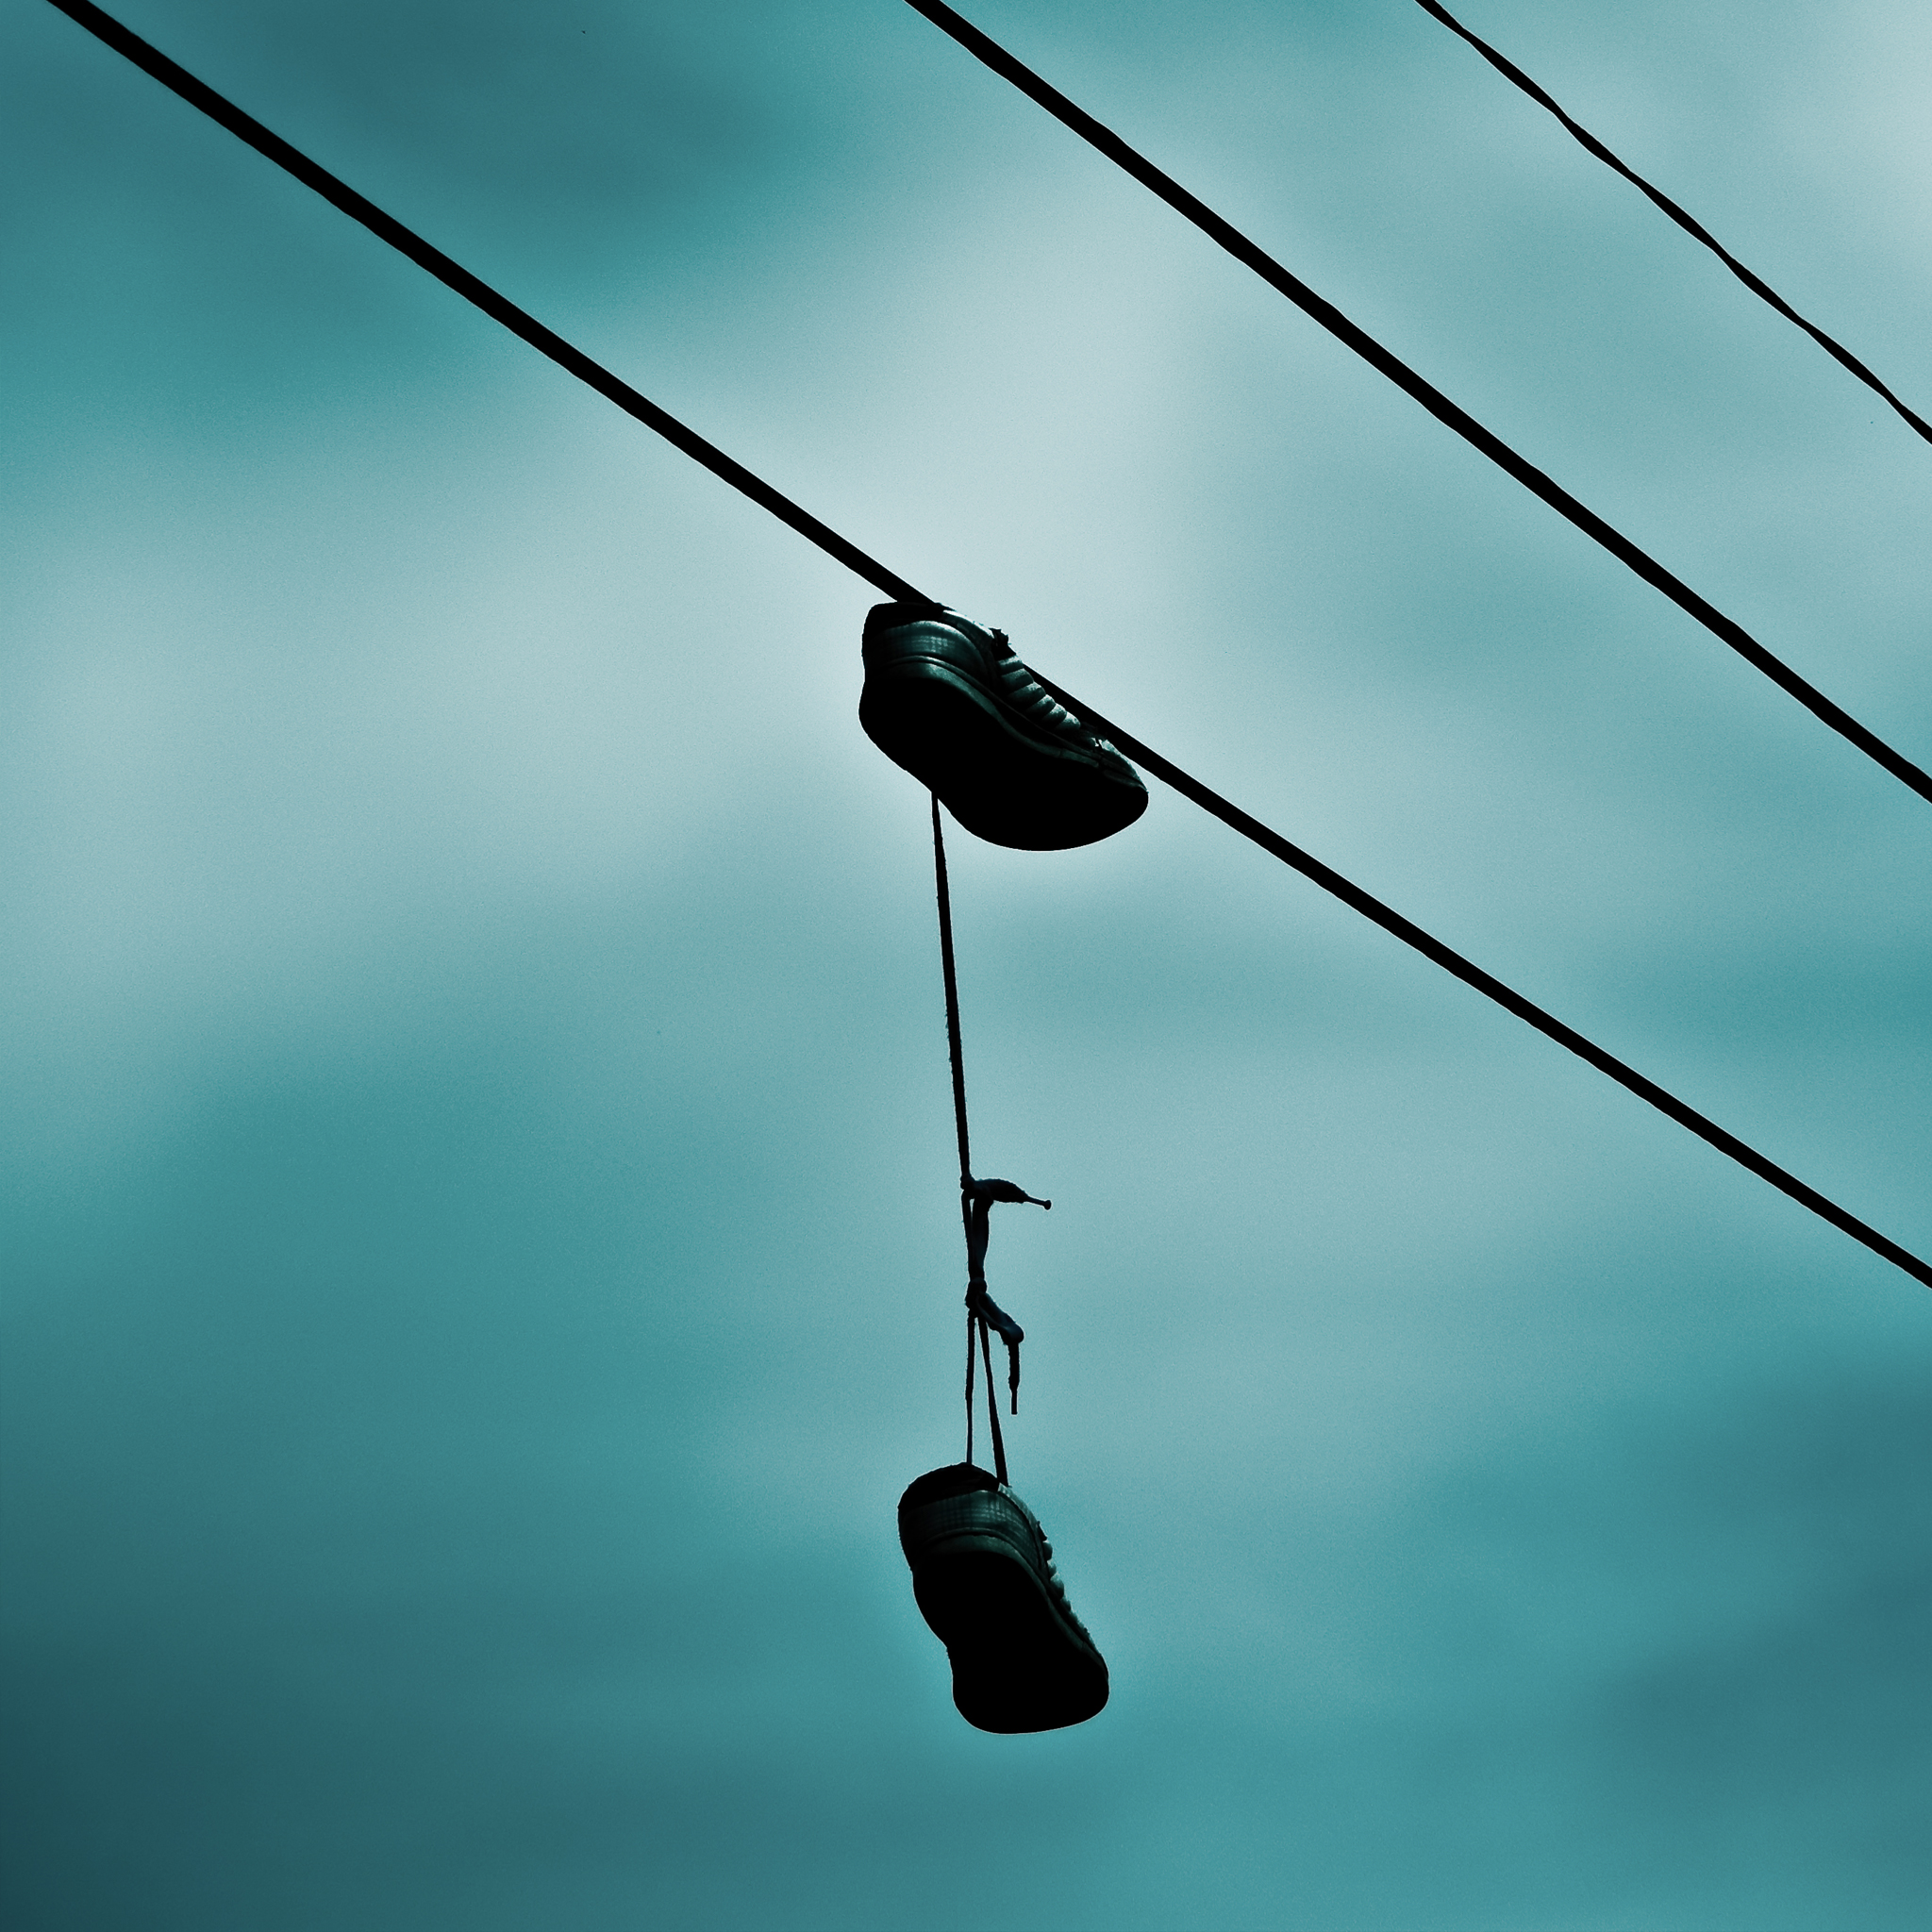 Shoes On Wire Ipad Wallpaper For Iphone 11 Pro Max X